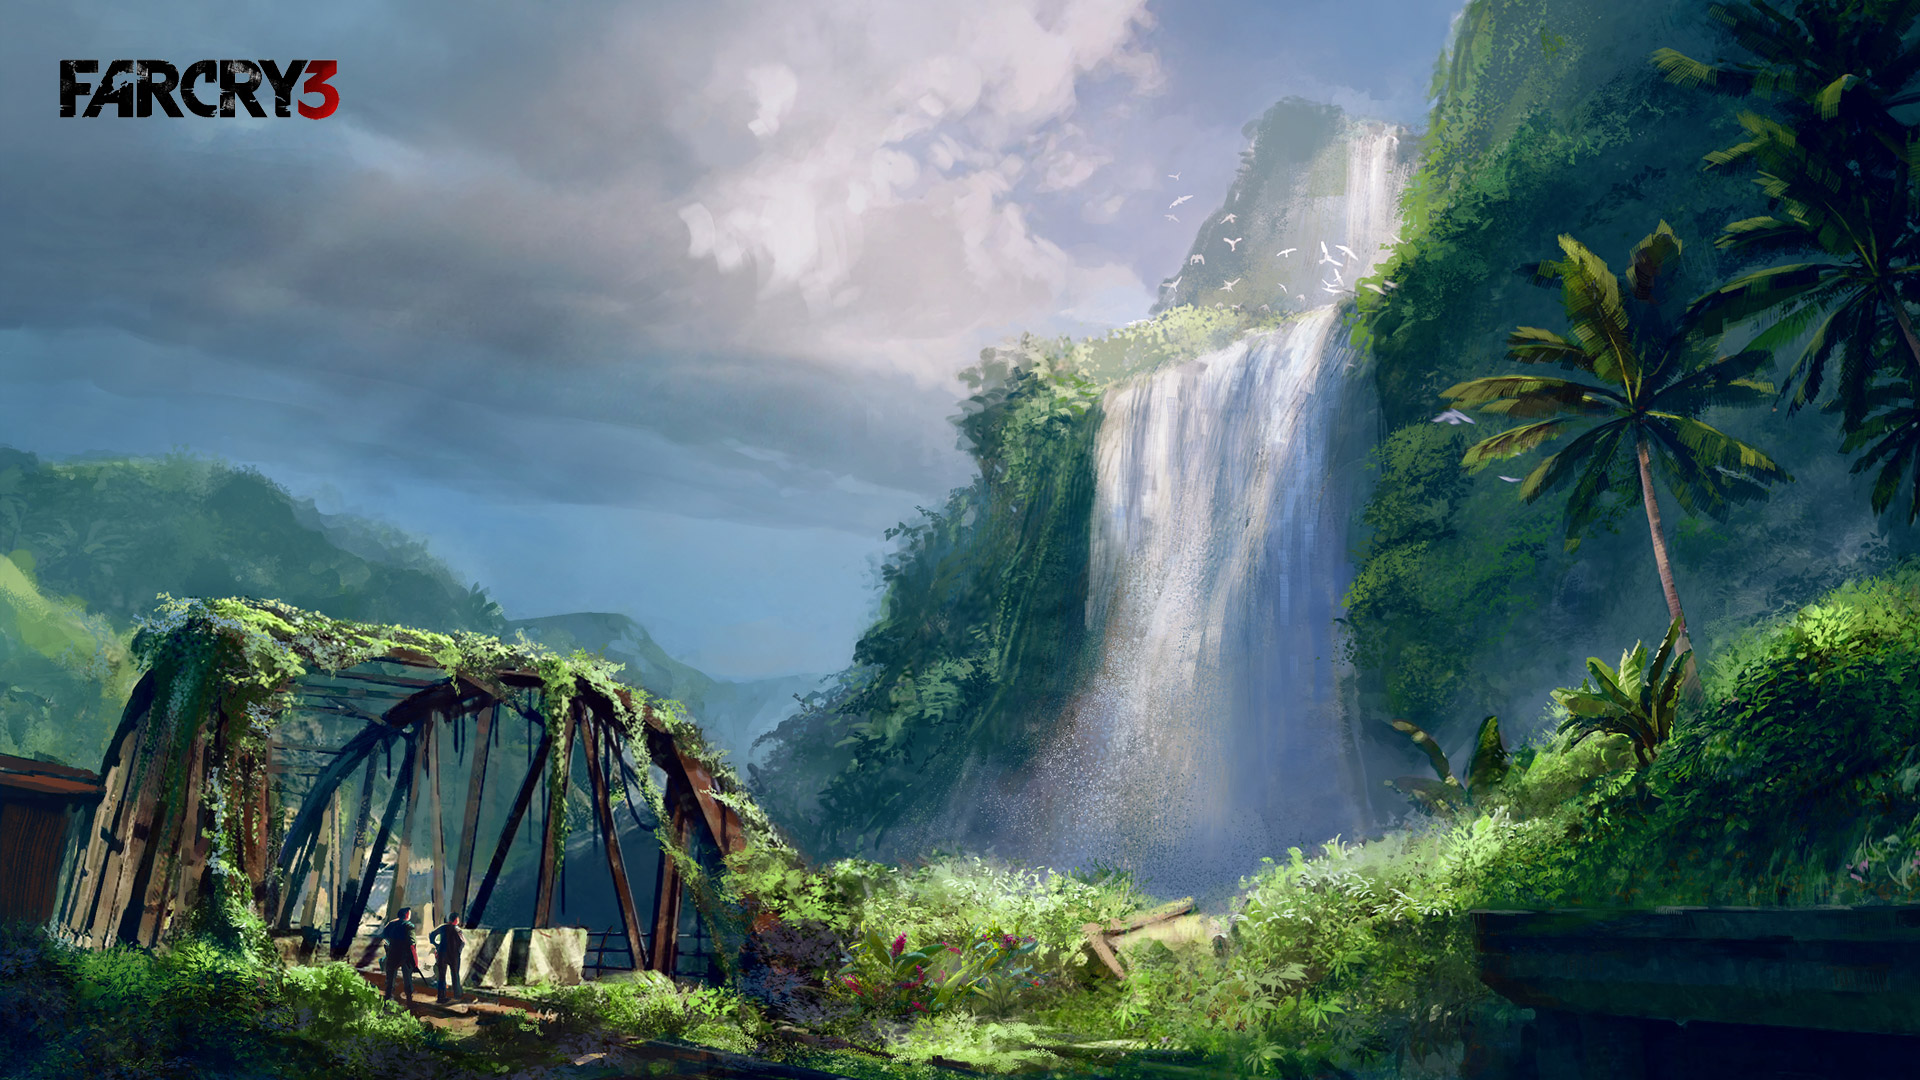 Free Download Far Cry 3 Wallpaper In 1920x1080 1920x1080 For